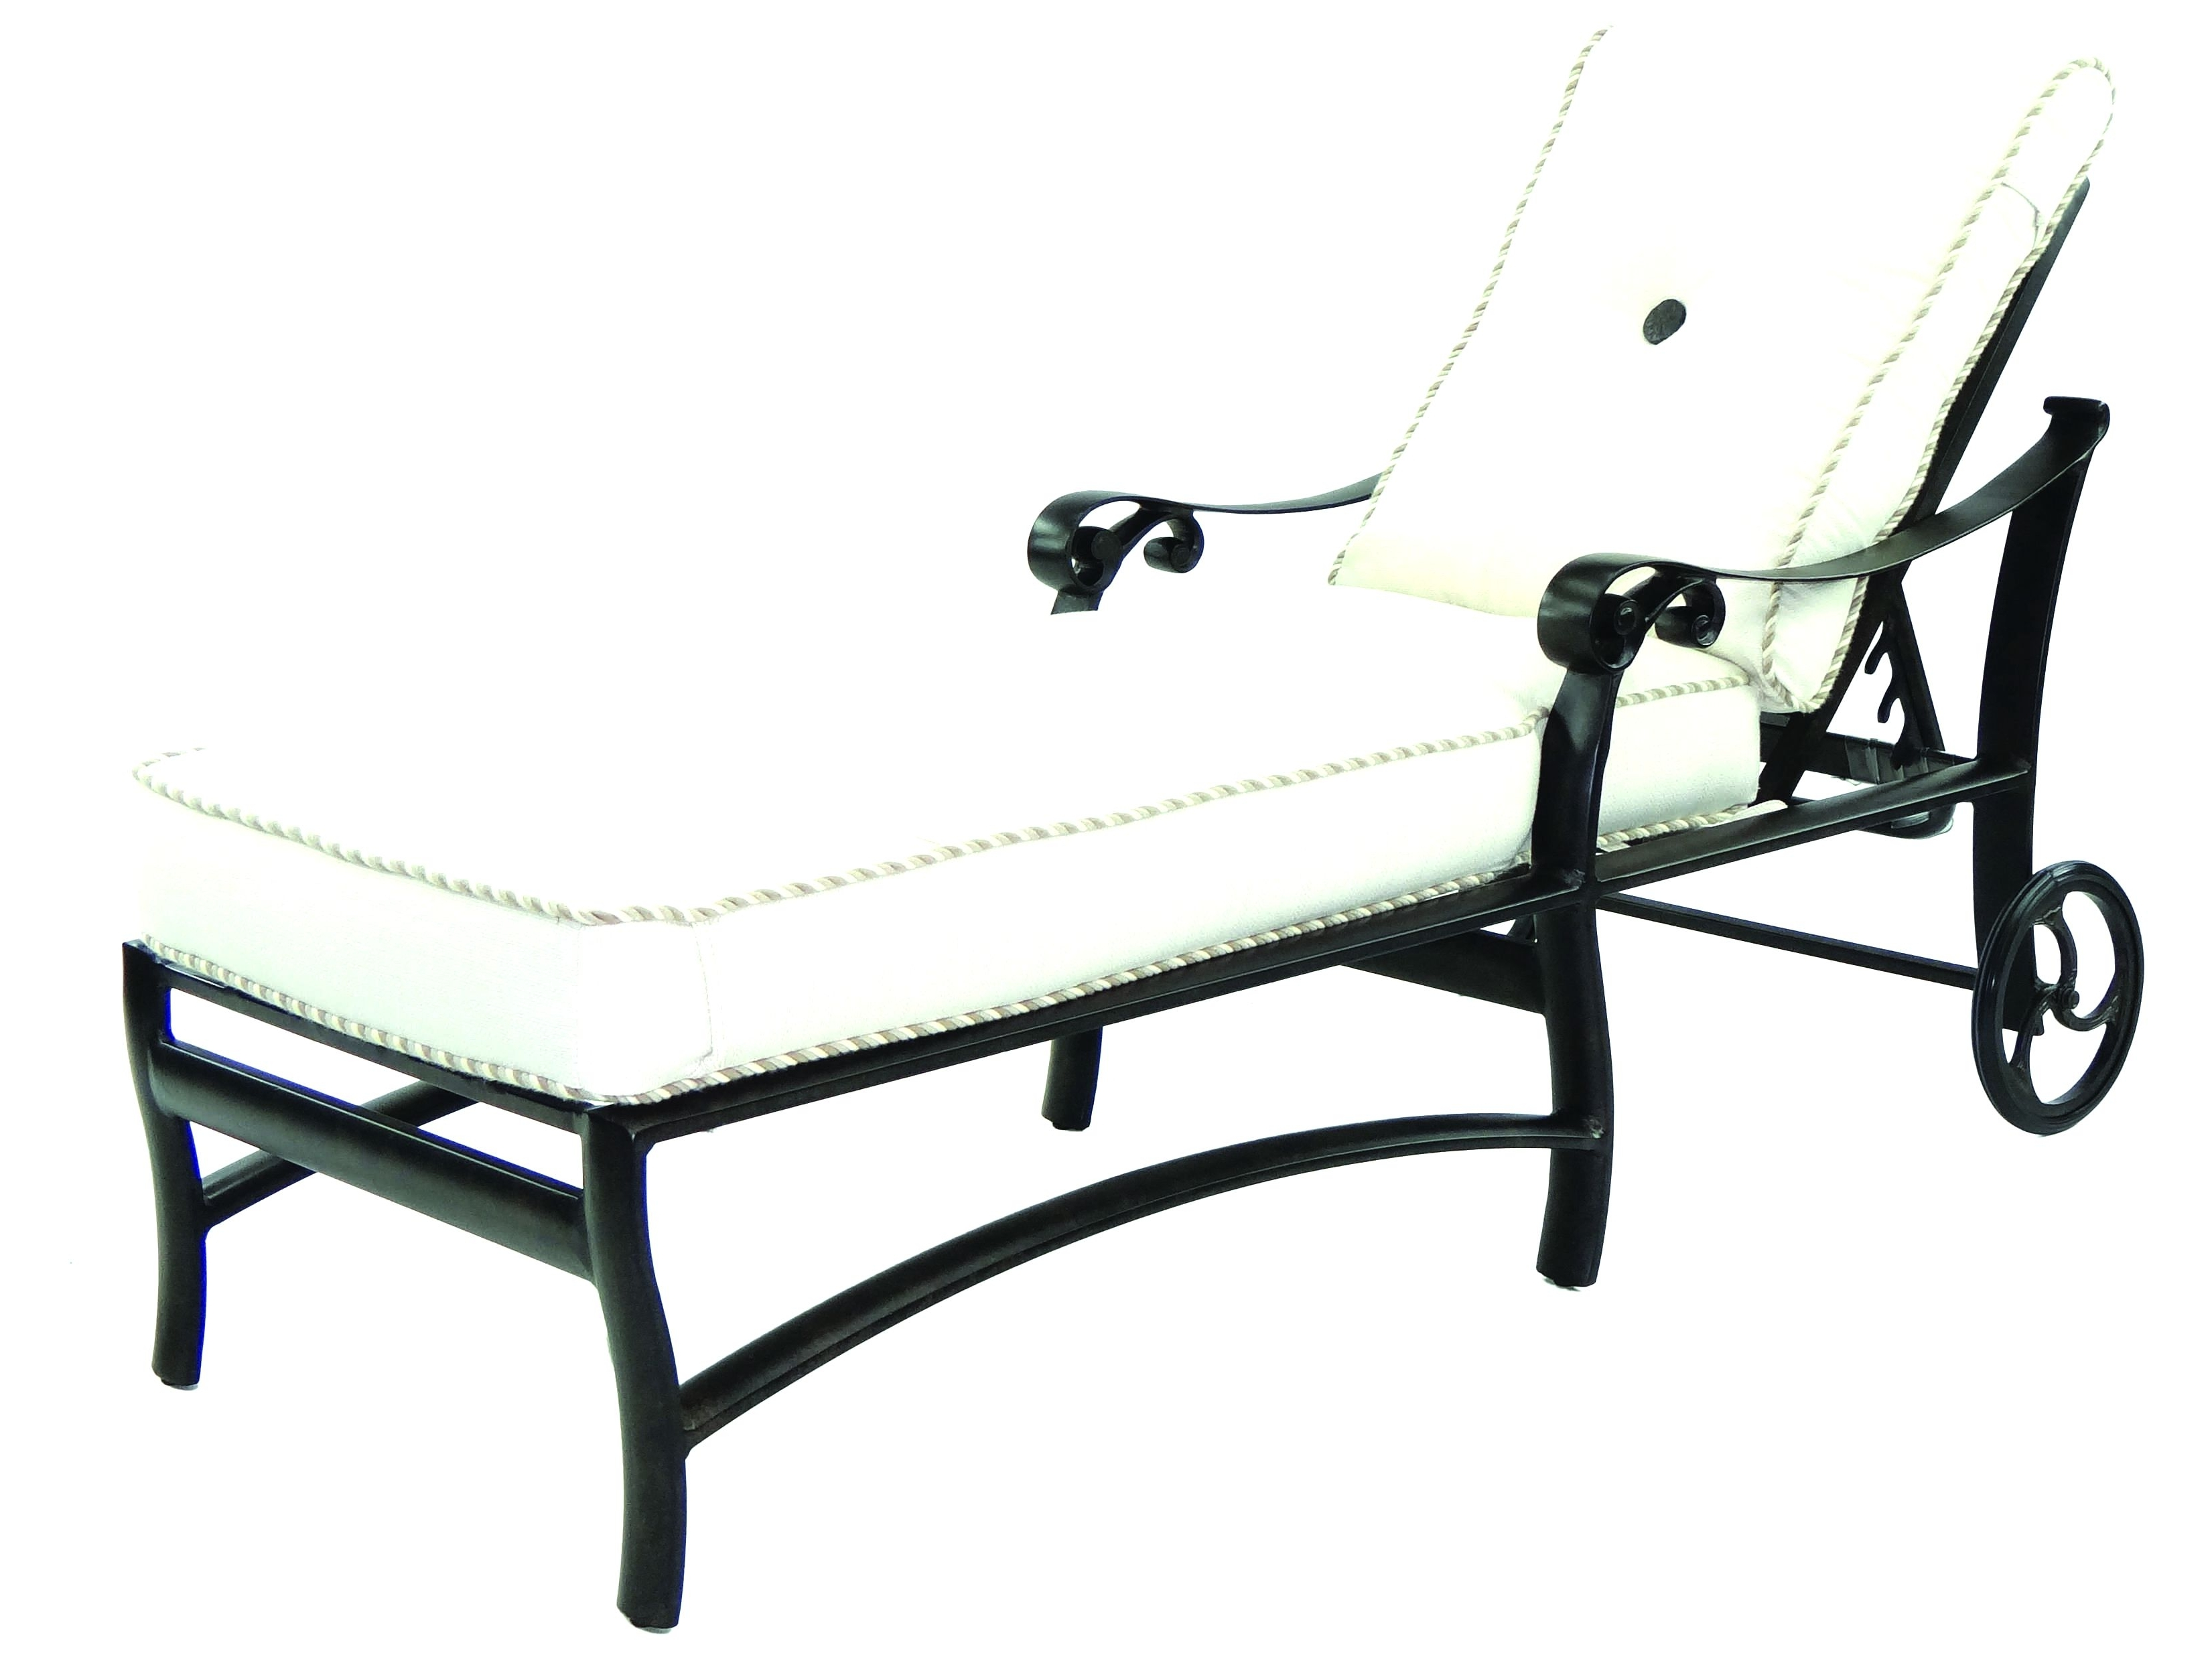 Cast Aluminum Chaise Lounges With Regard To Newest 25 Inspirational Cast Aluminum Chaise Lounge Scheme – Lounge Chair (View 5 of 15)